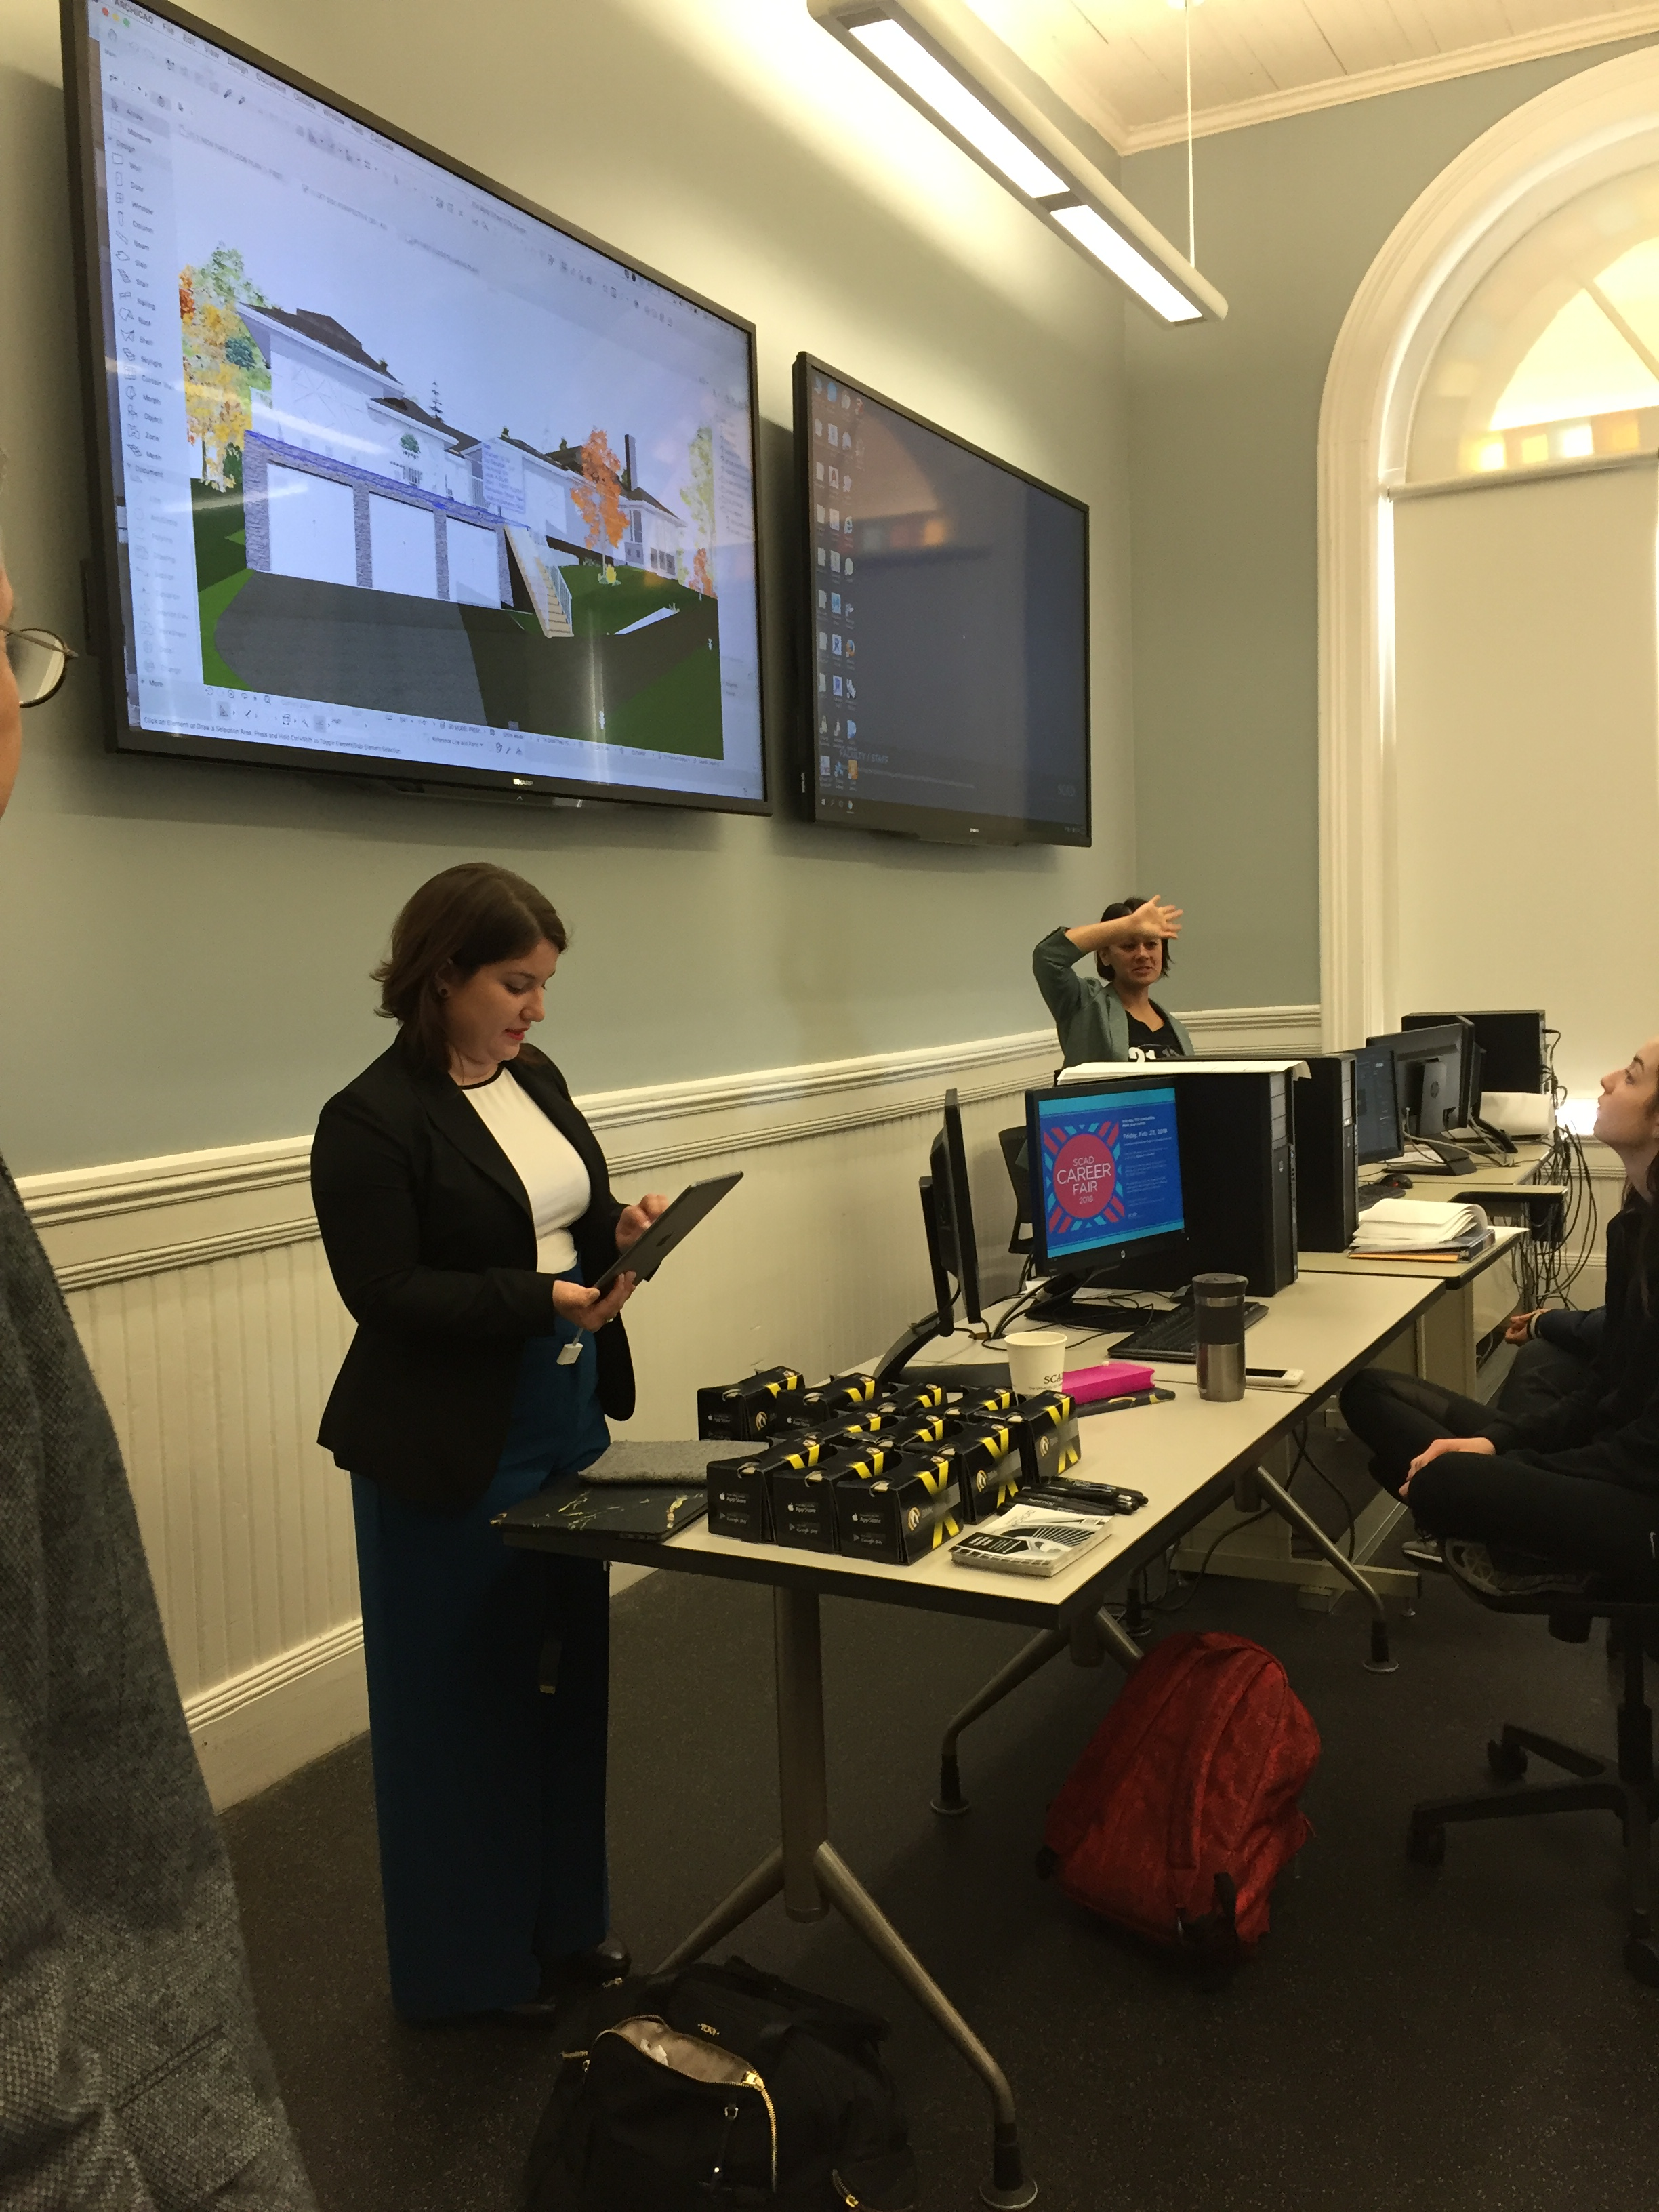 Students In The Architecture And Interior Design Program At SCAD Were Given  An Opportunity To See ARCHICAD In Use. The GRAPHISOFT Team Delivered A  Series Of ...